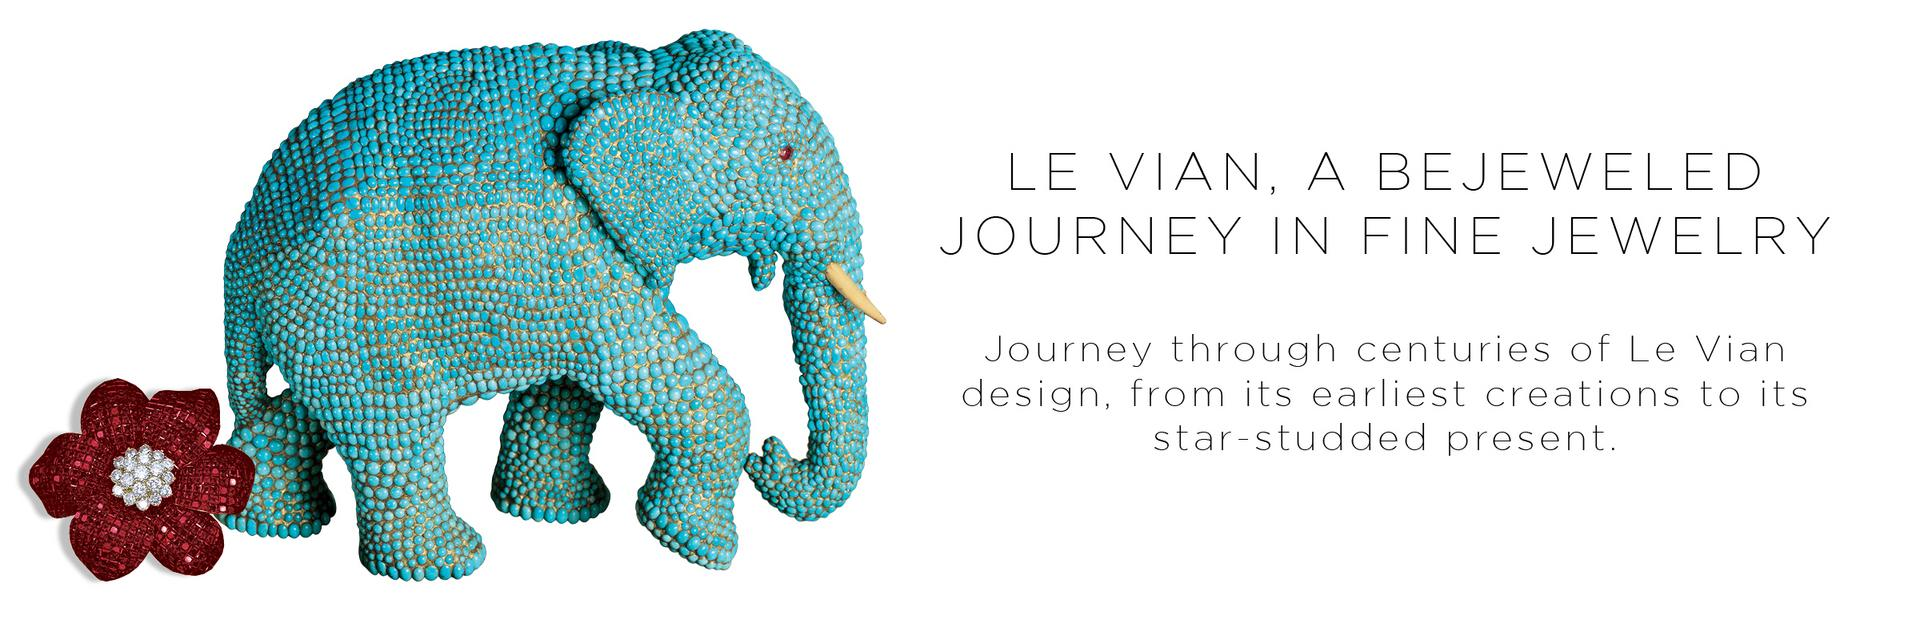 The History of Le Vian